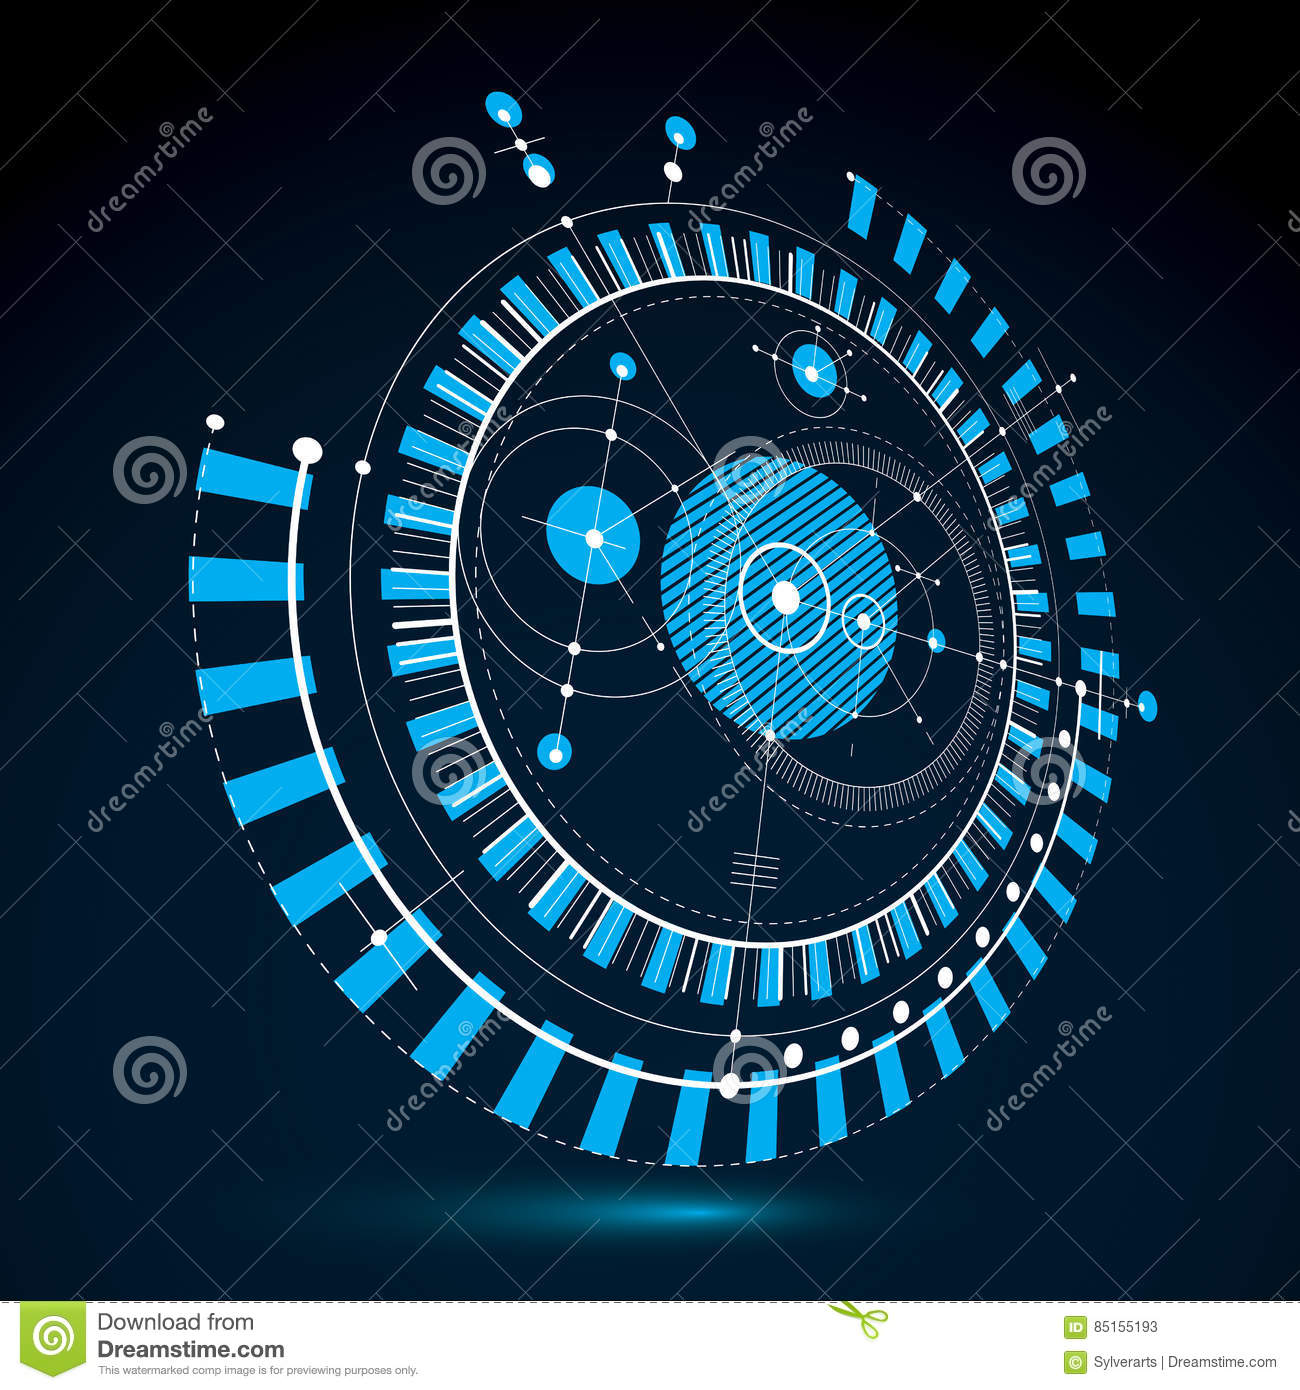 Geometric Technology 3d Vector Drawing Blue Technical